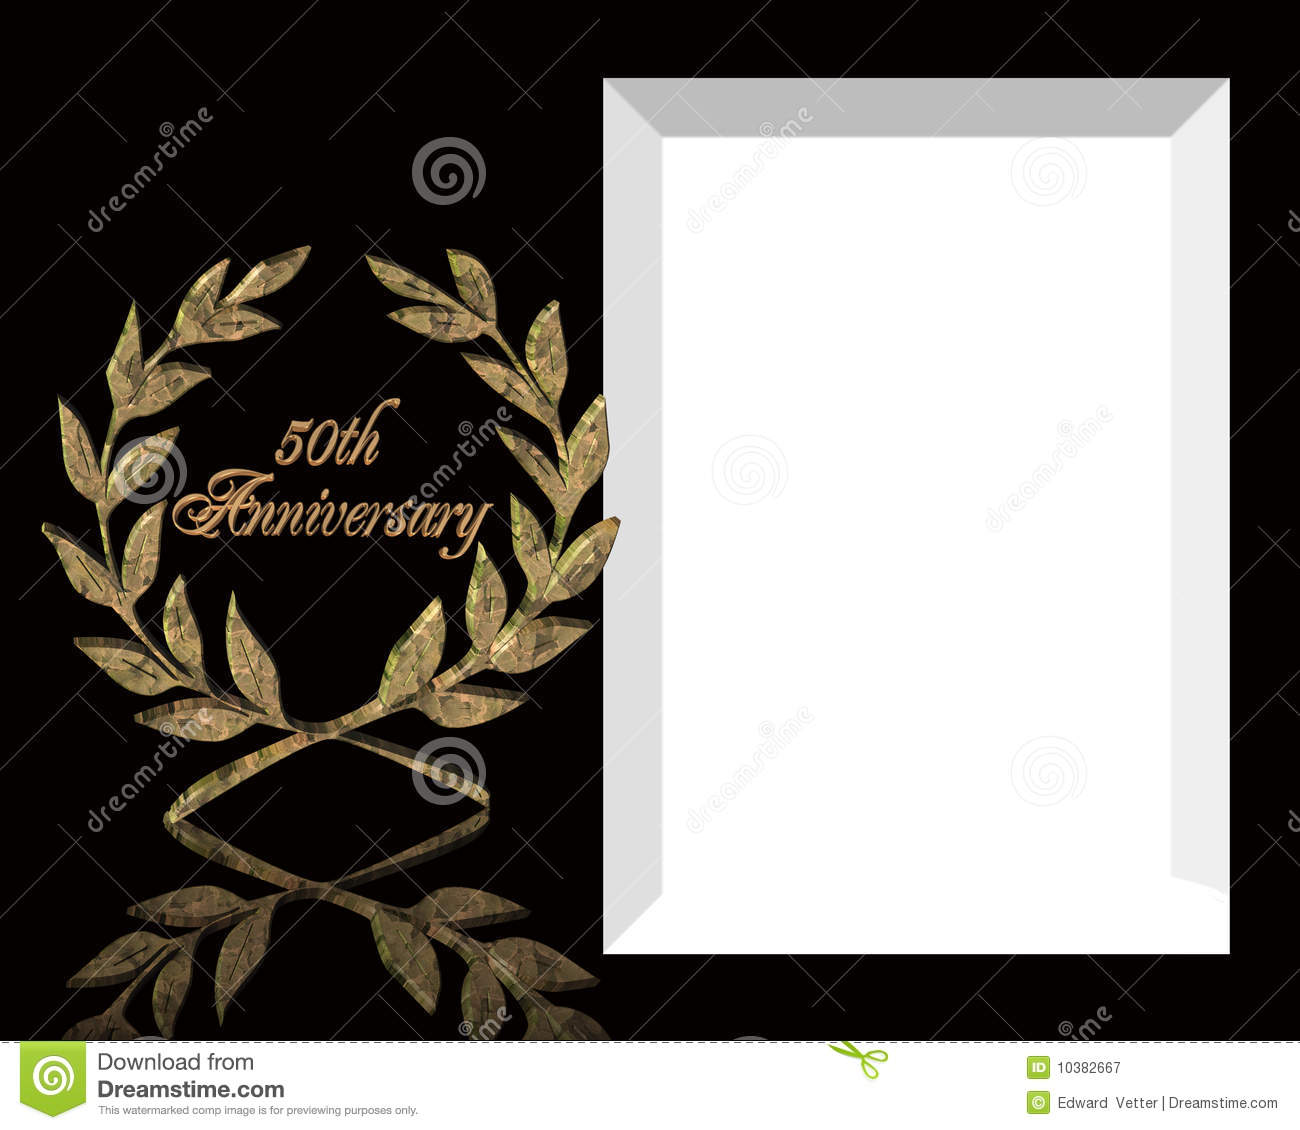 50th Wedding Anniversary Invitation Royalty Free Stock